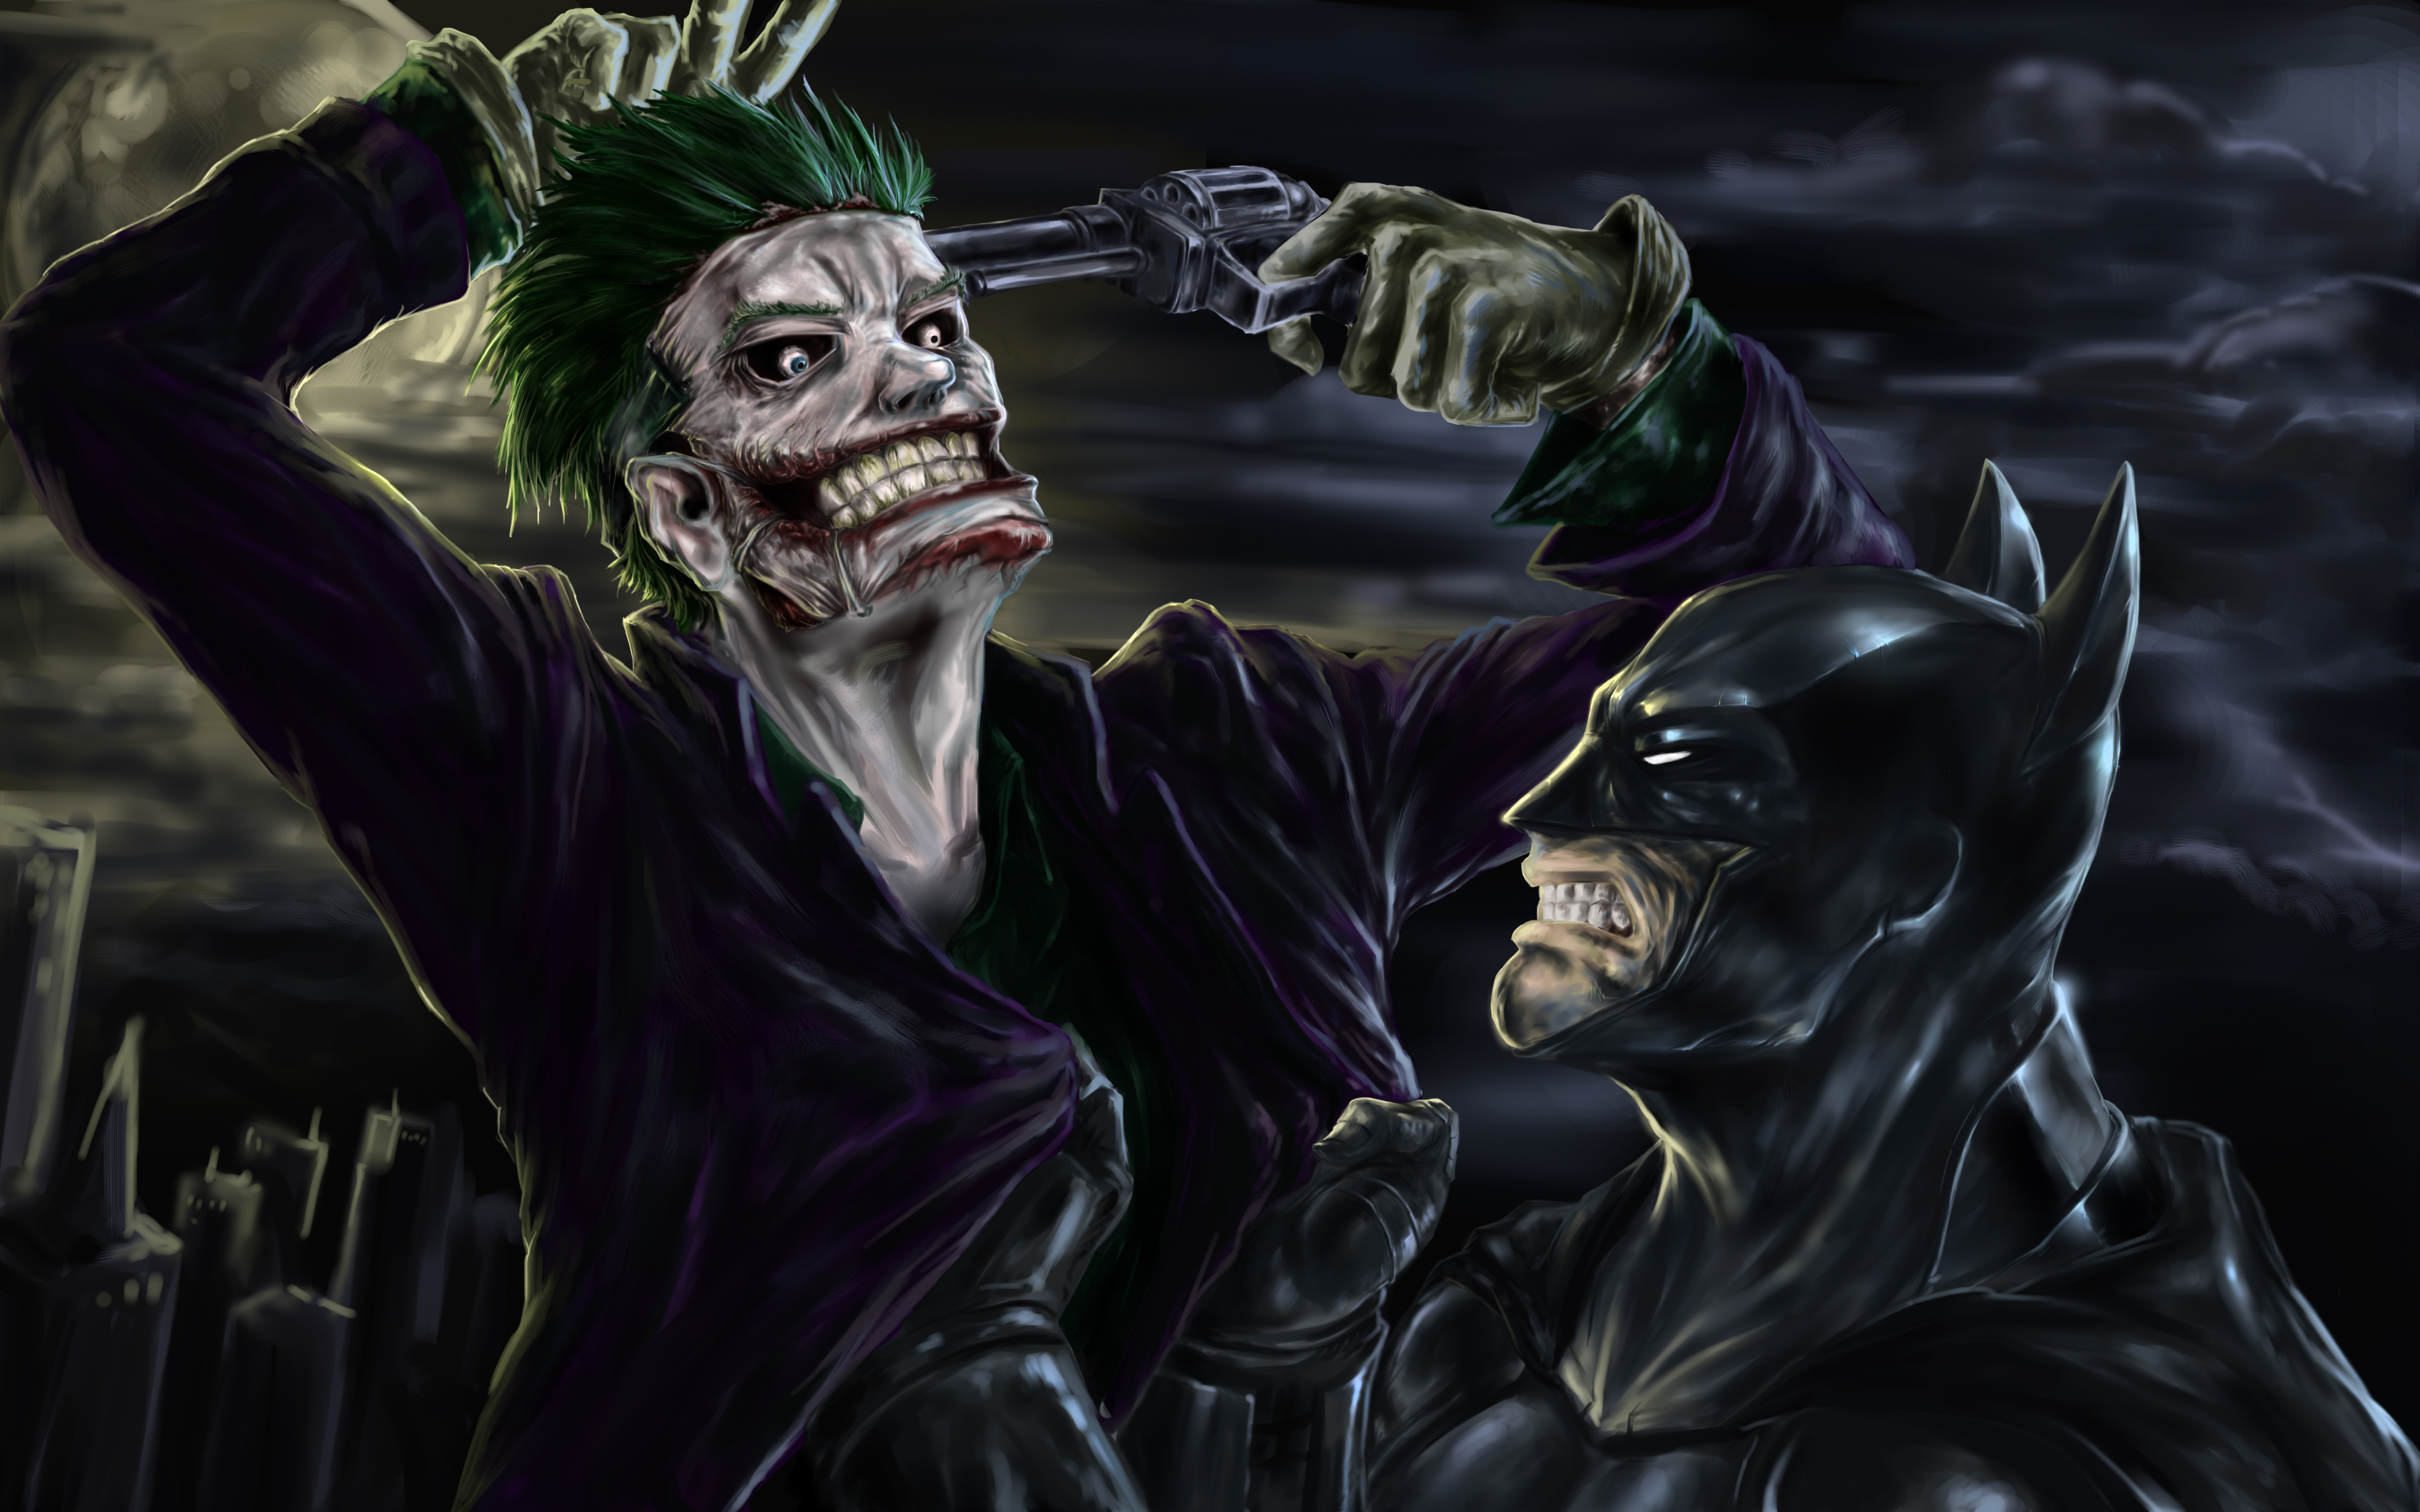 Batman And Joker 4k, HD Superheroes, 4k Wallpapers, Images ...